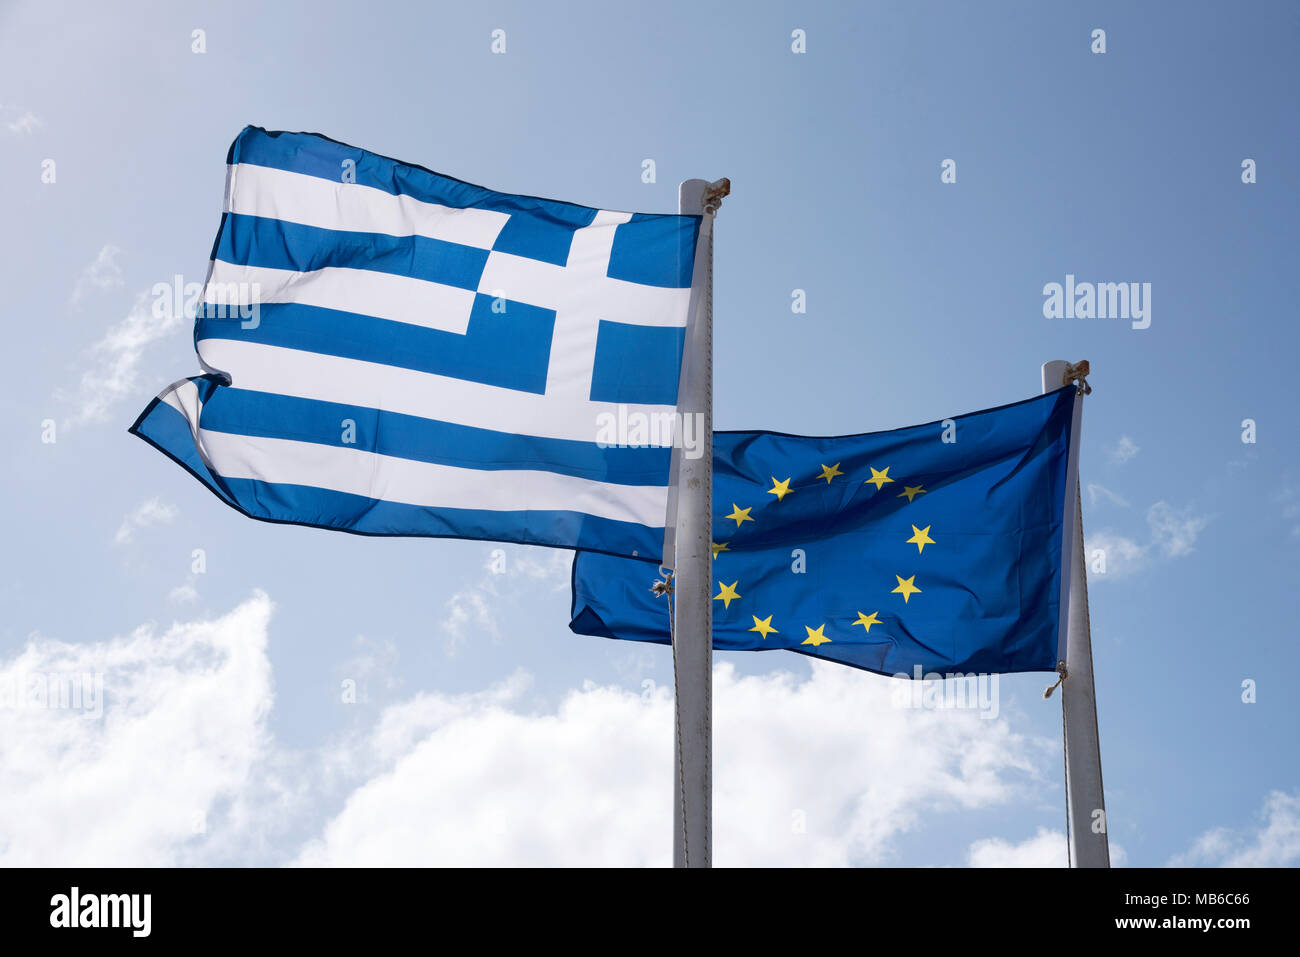 The Greek flag and the European Union flags flying together - Stock Image